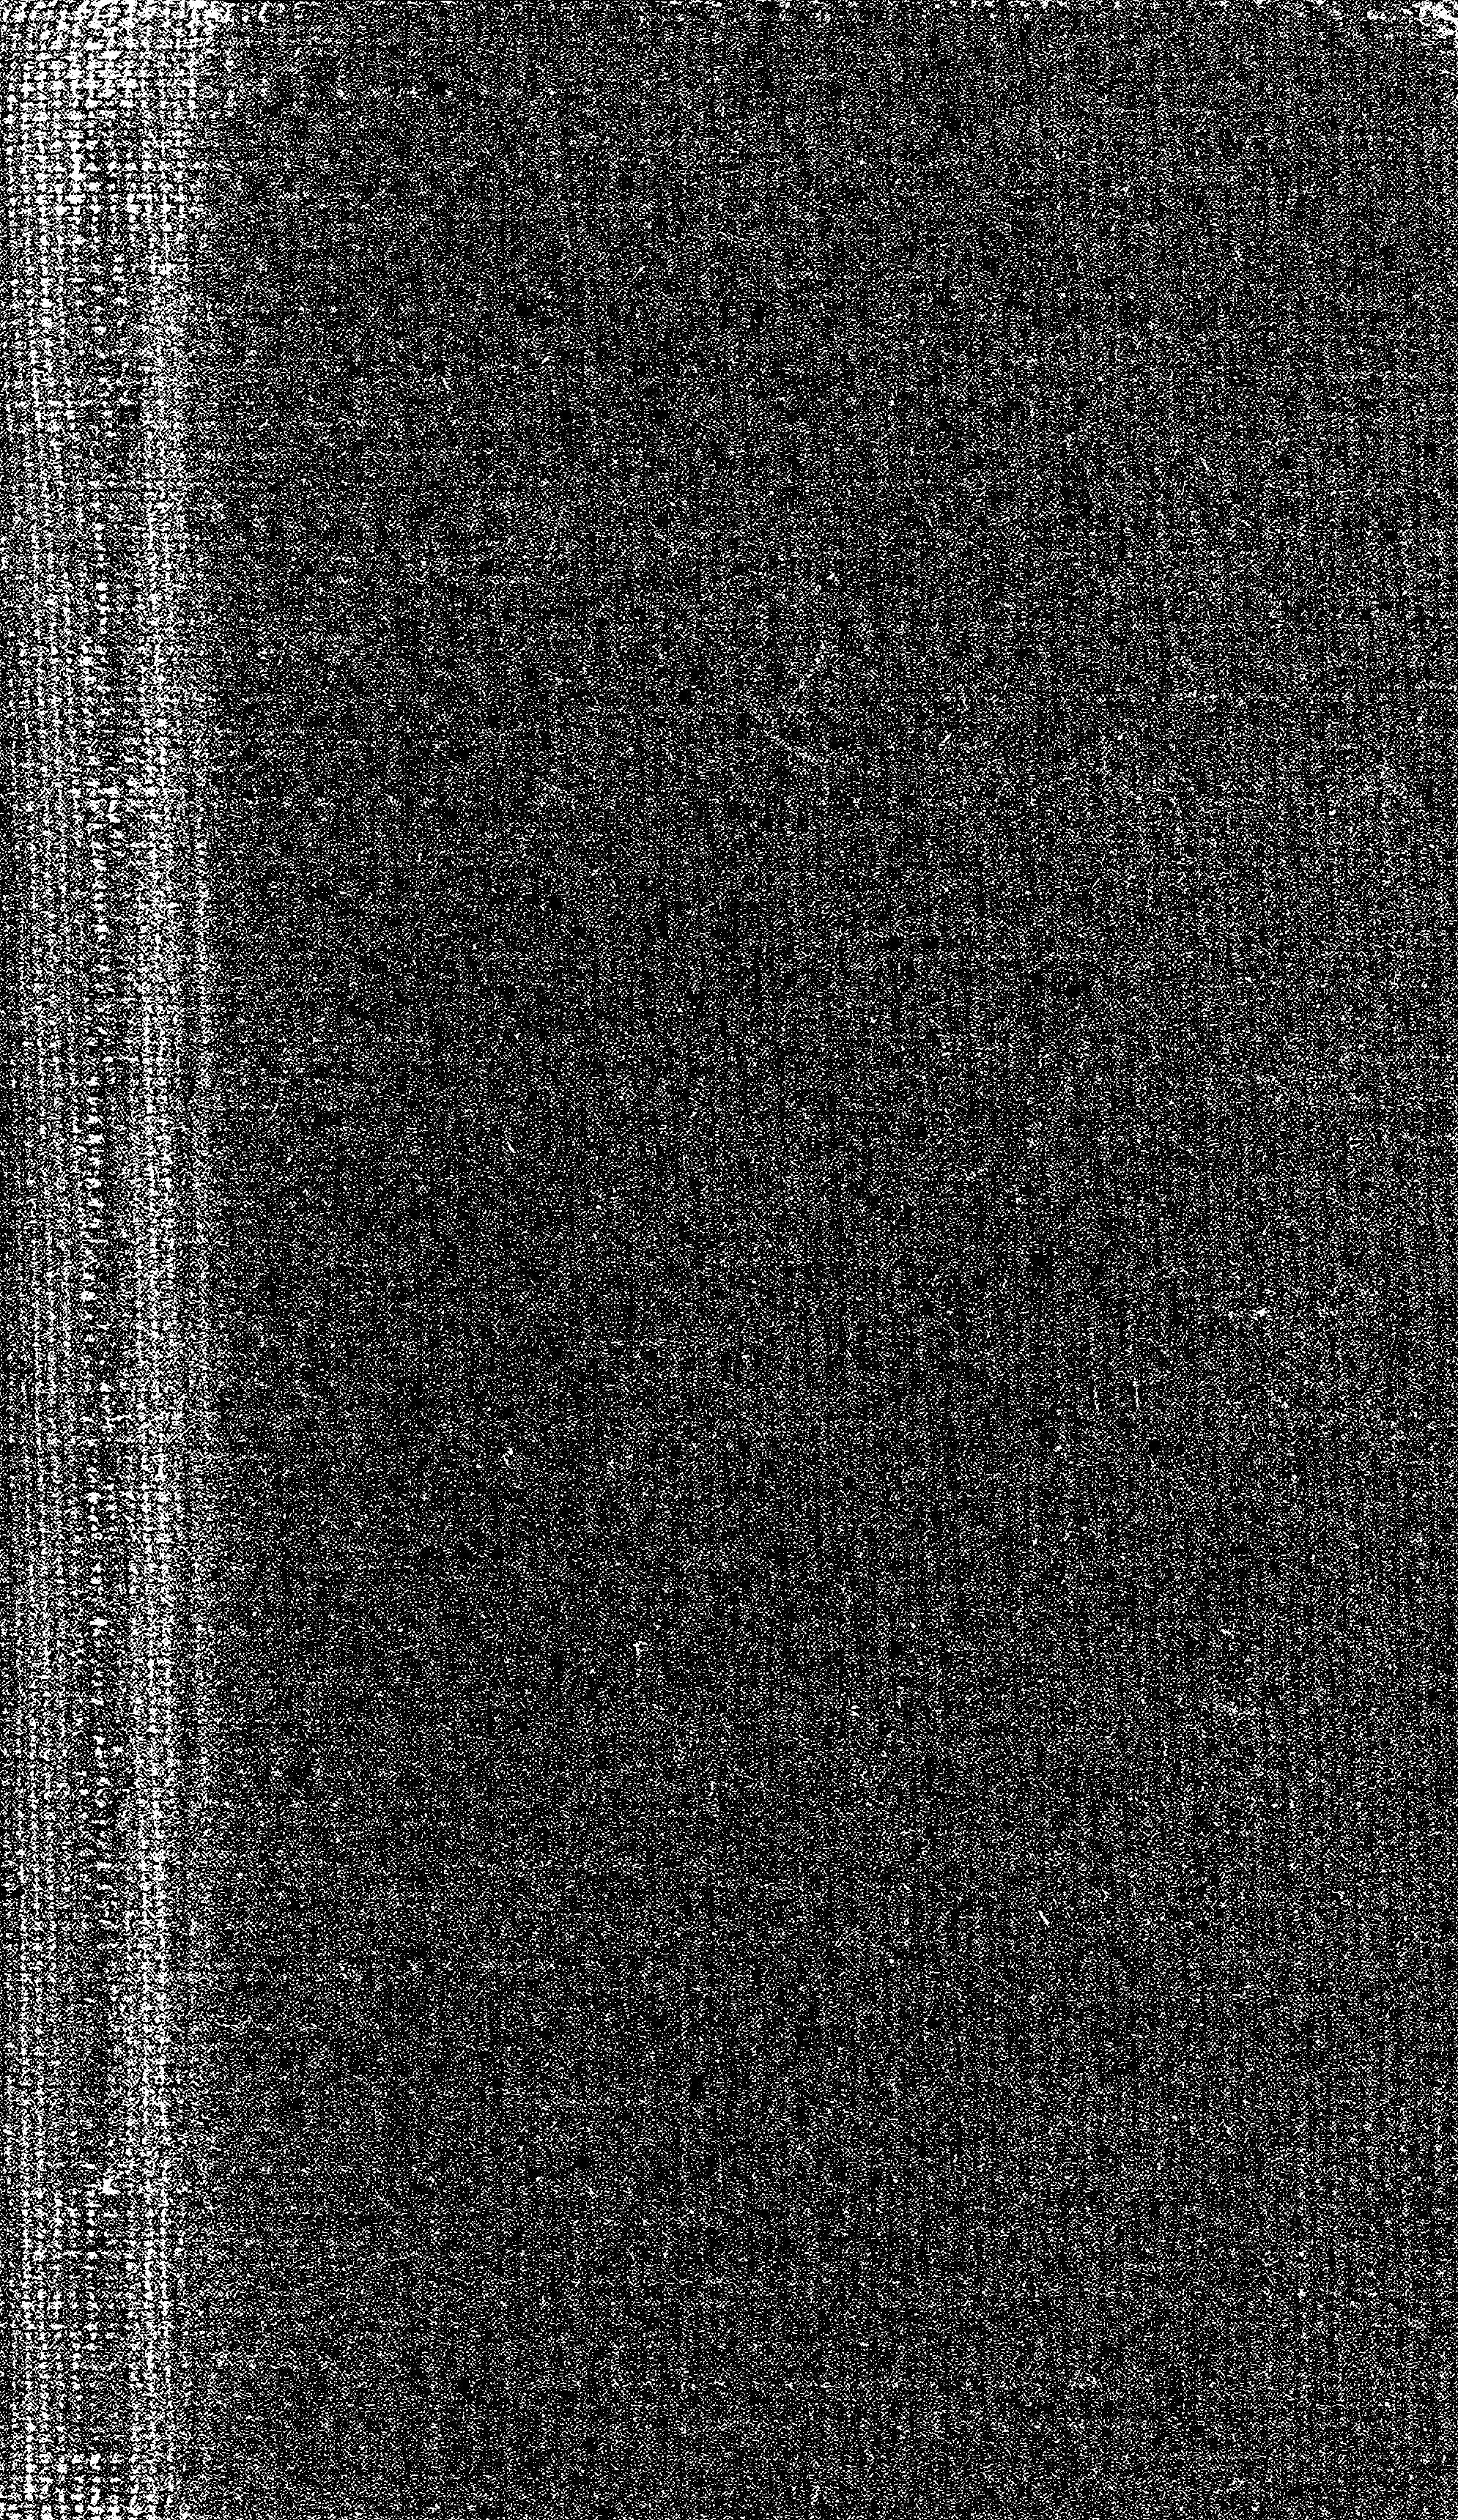 Alpena, dates of events by John C. Viall